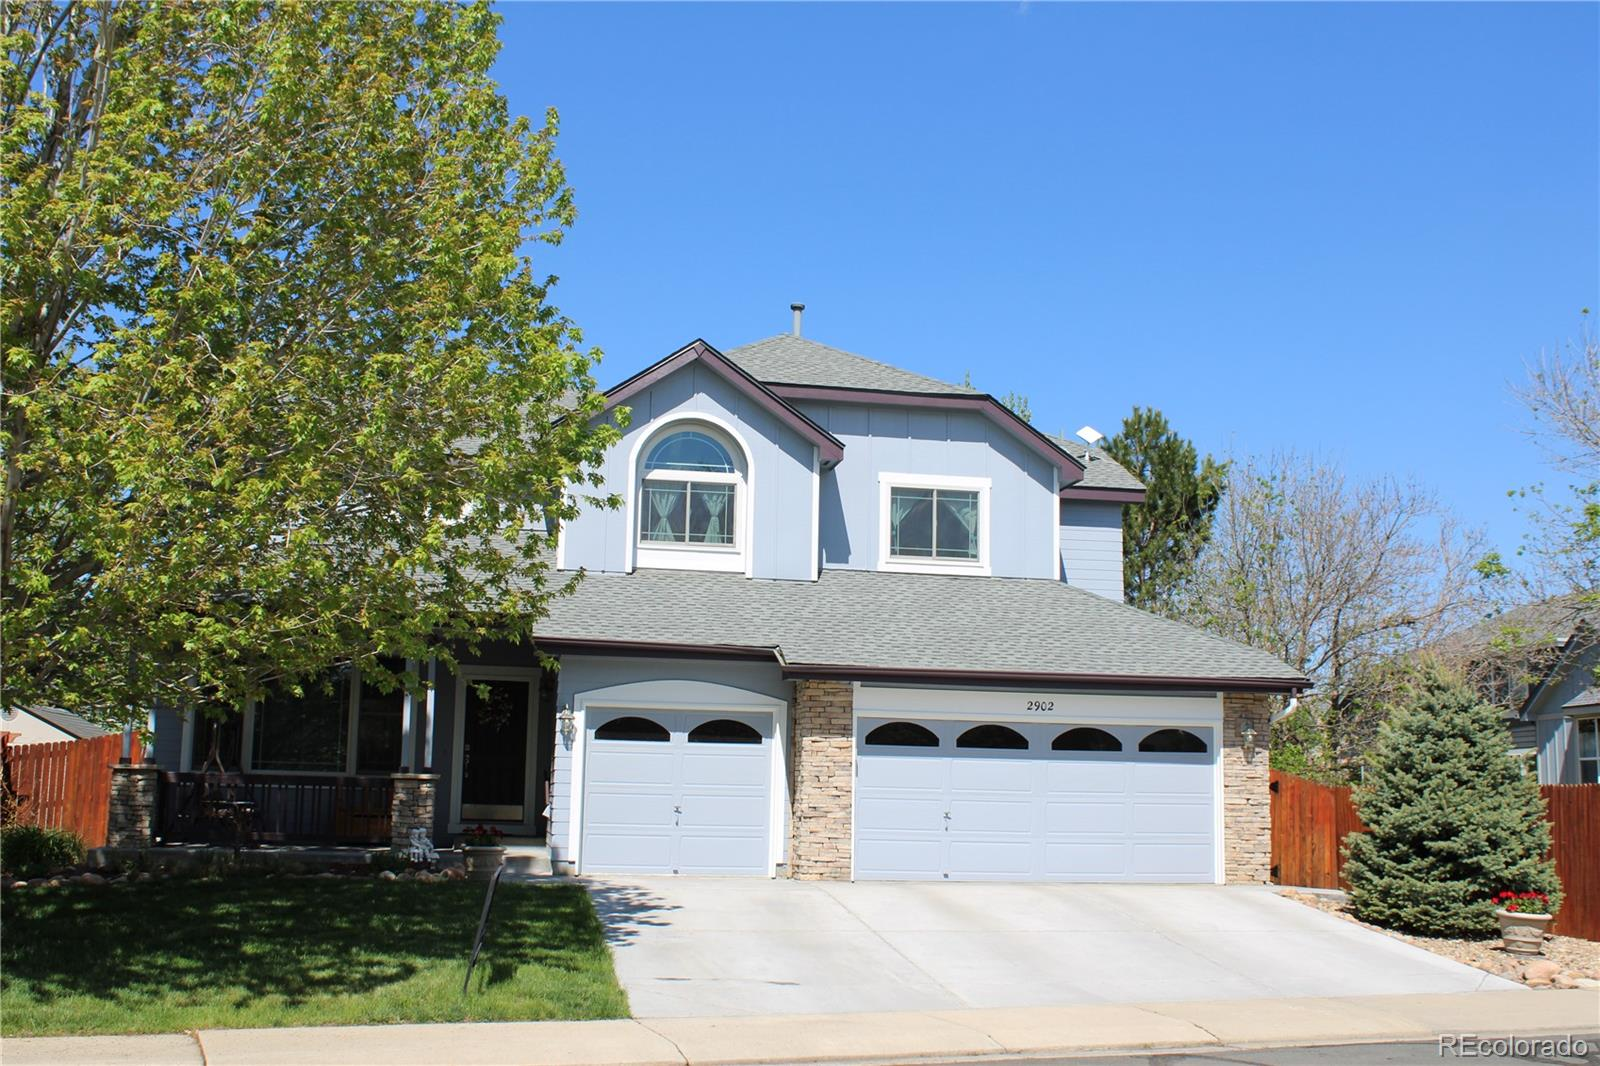 2902 Prince Circle, Erie, CO 80516 - Erie, CO real estate listing